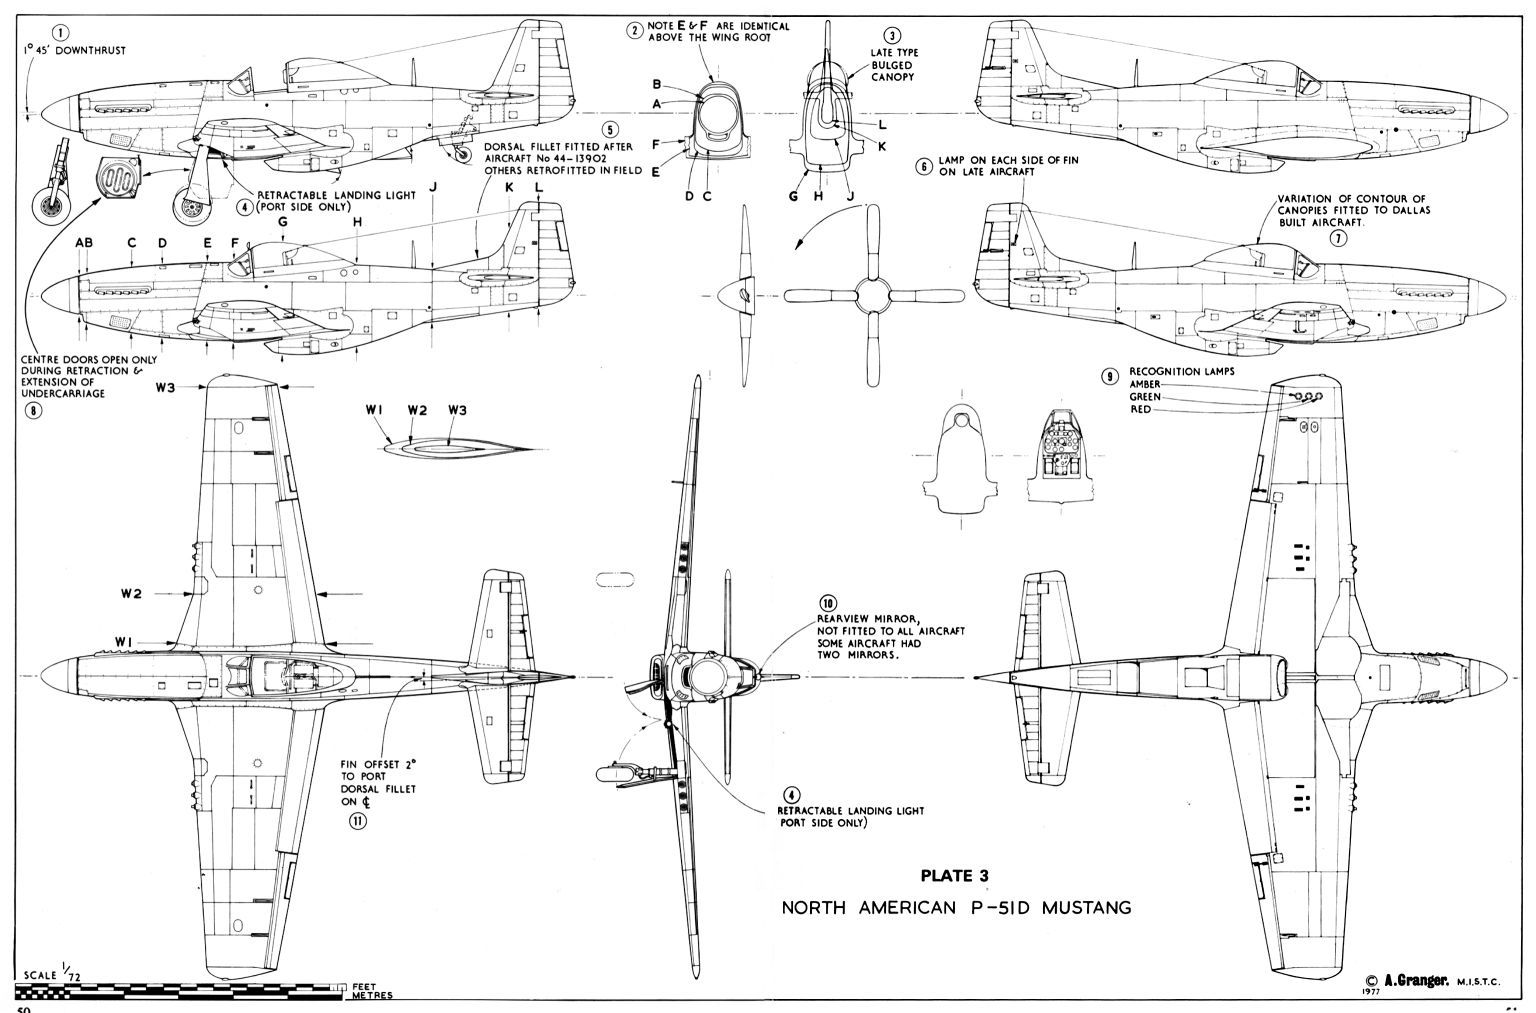 aviation engineering schematics wiring library aviation symbols schematic for p 51 d mustang wwii airplane aviation aerospace engineering ,